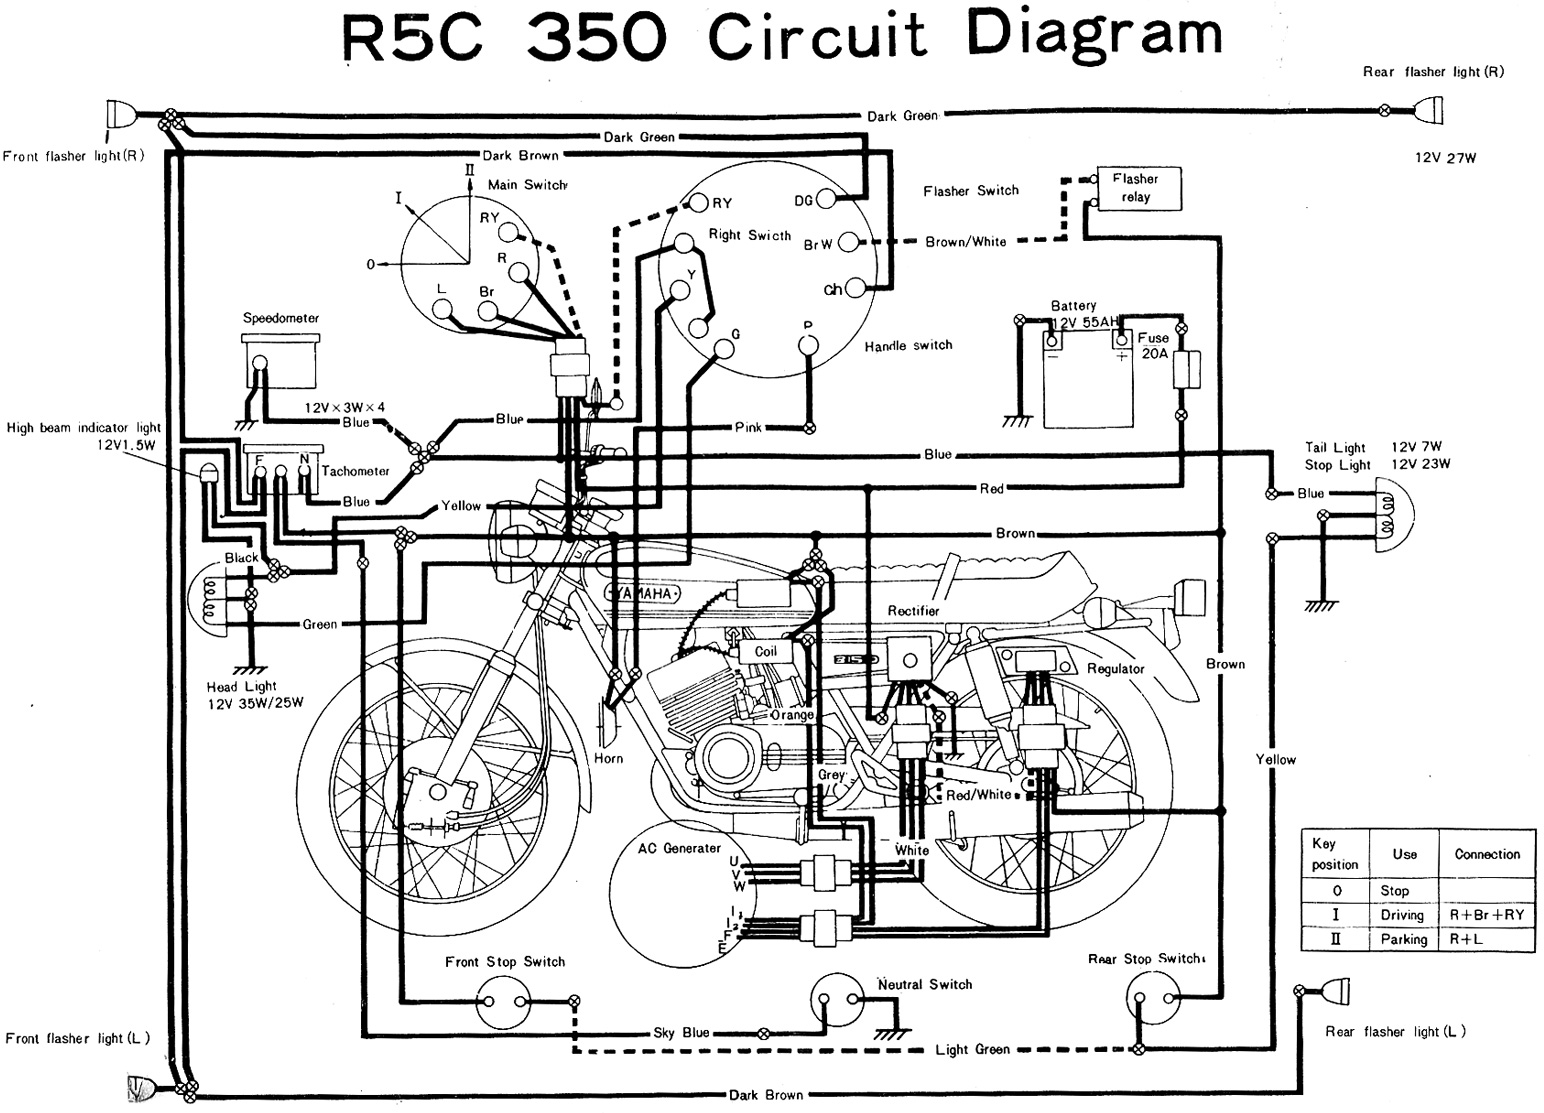 yamaha rd350 r5c wiring diagram evan fell motorcycle works rh cycles evanfell com 350 GMC Wiring Diagram 1975 yamaha rd 350 wiring diagram